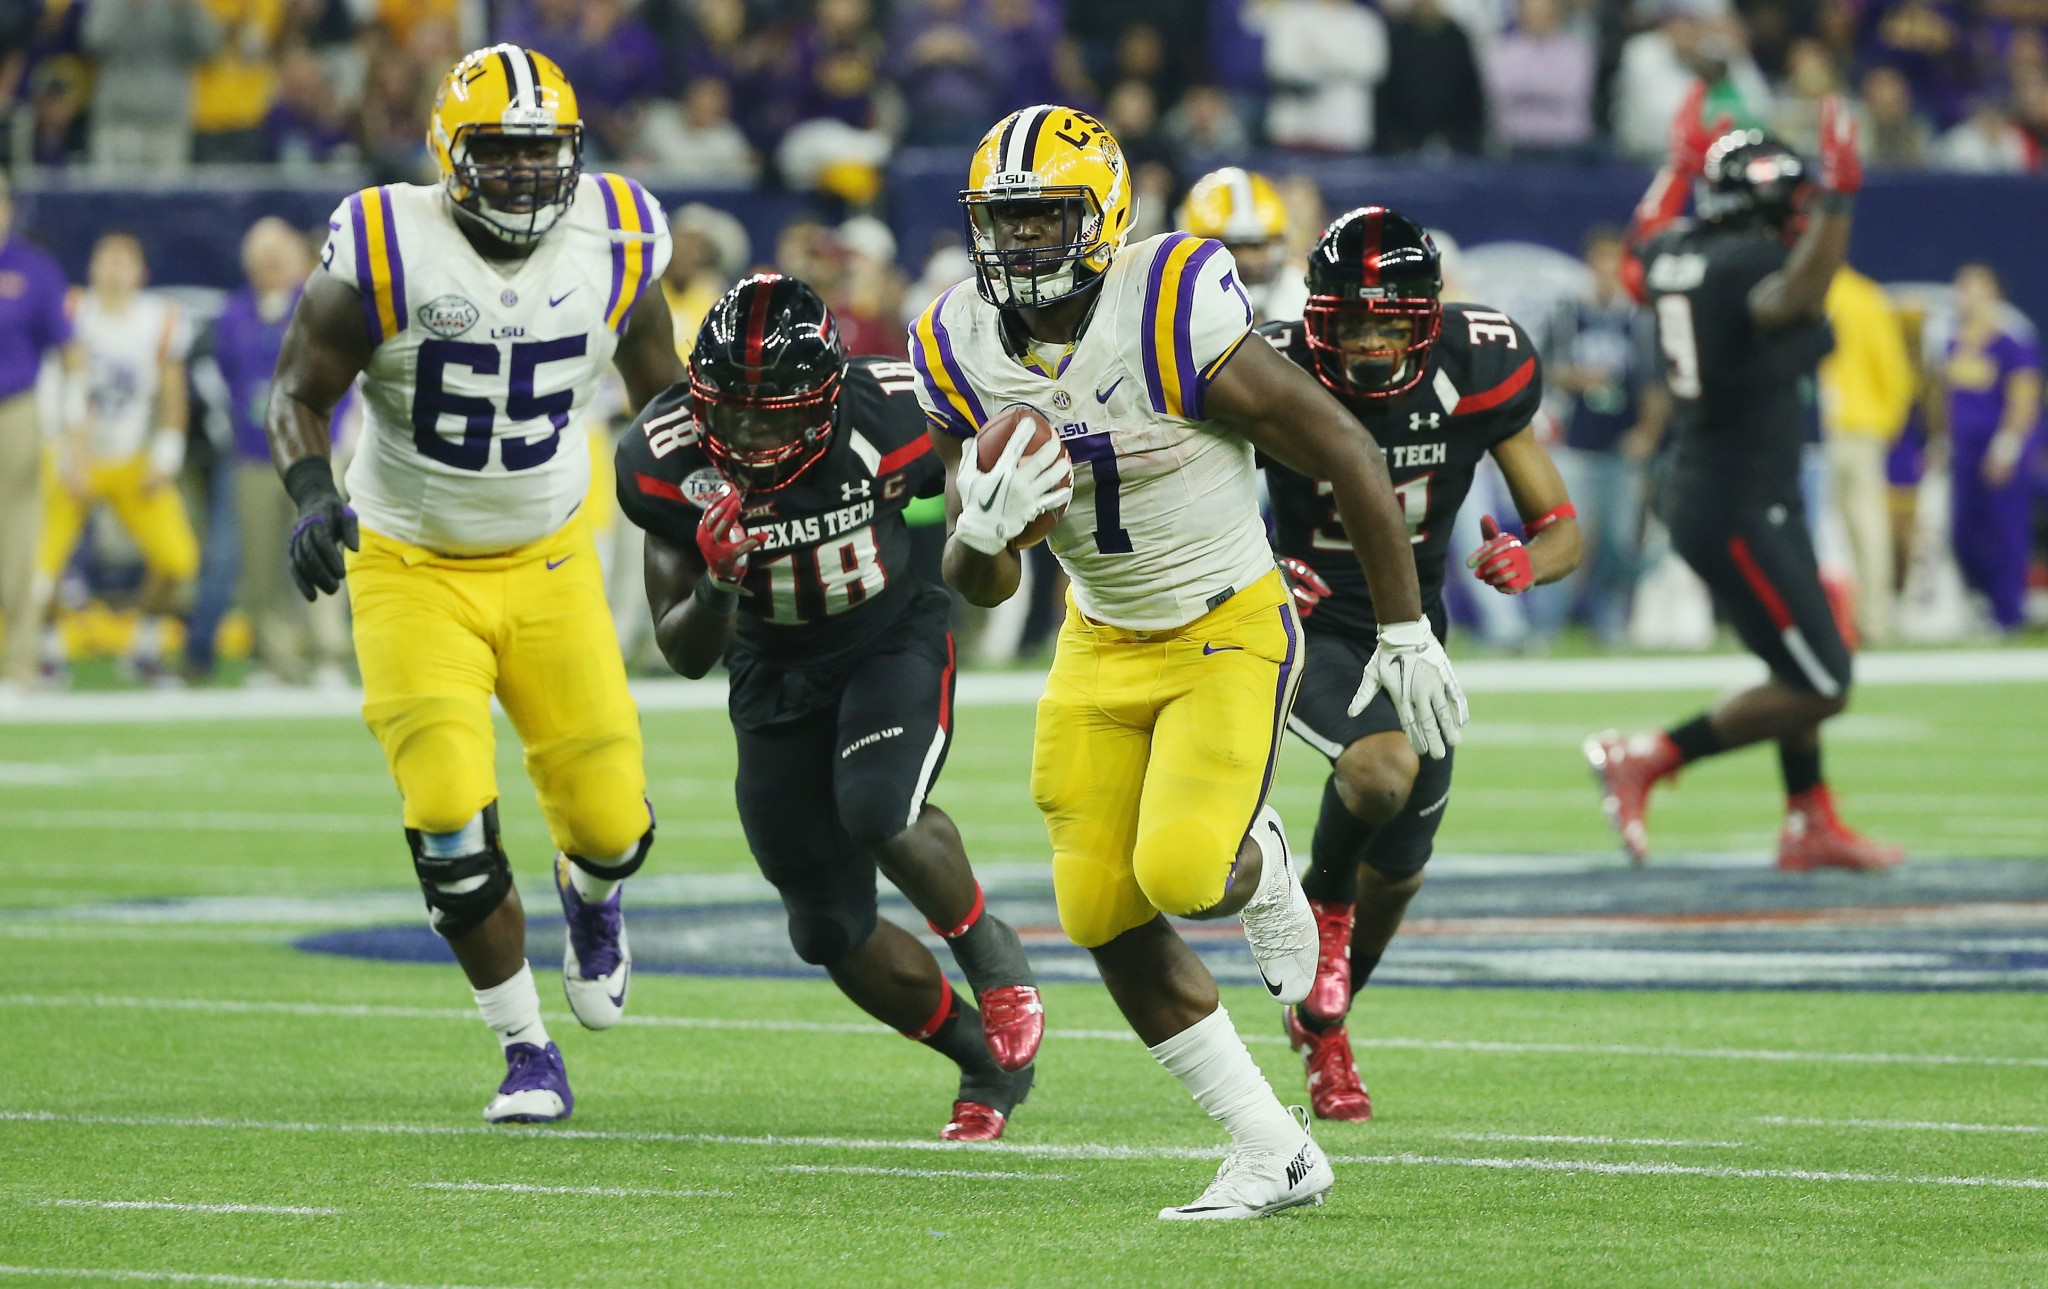 HOUSTON, TX - DECEMBER 29: Leonard Fournette #7 of the LSU Tigers runs for a 43-yard touchdown during the second half of their game against the Texas Tech Red Raiders during the AdvoCare V100 Texas Bowl at NRG Stadium on December 29, 2015 in Houston, Texas. (Photo by Scott Halleran/Getty Images)